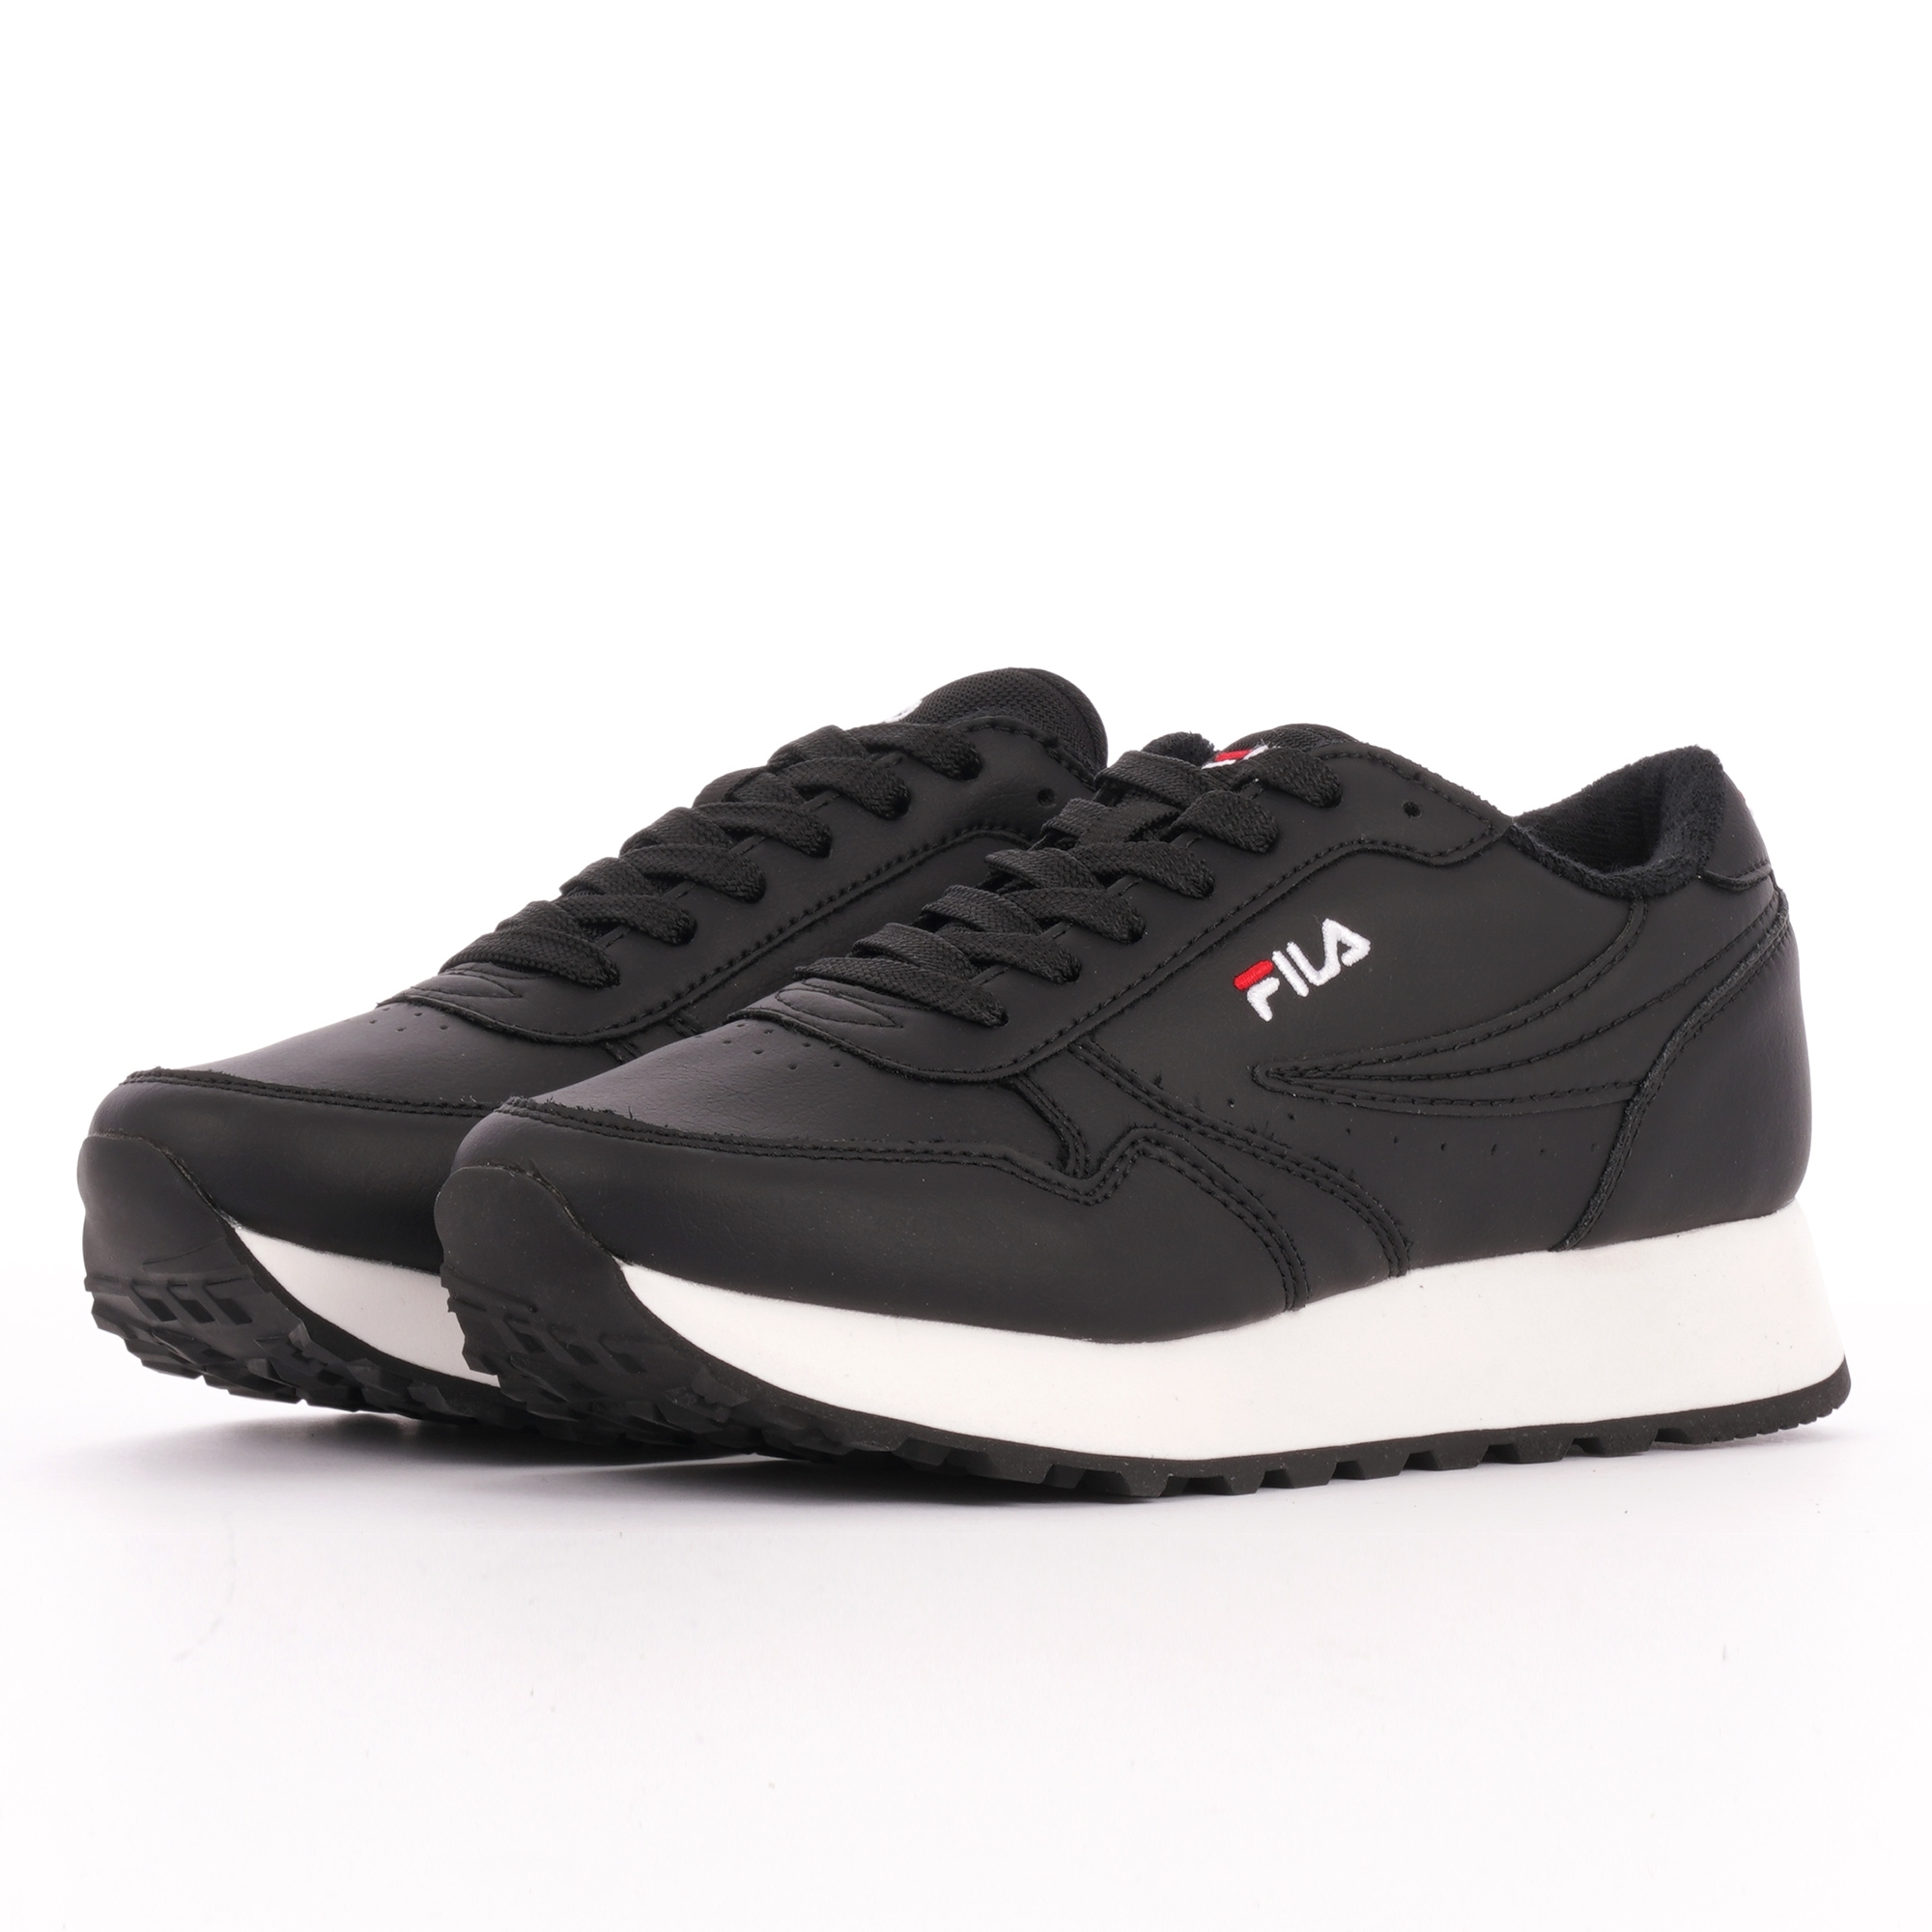 772af5c2bee266 Fila Womens Orbit Zeppa | Black | 1010311.25Y